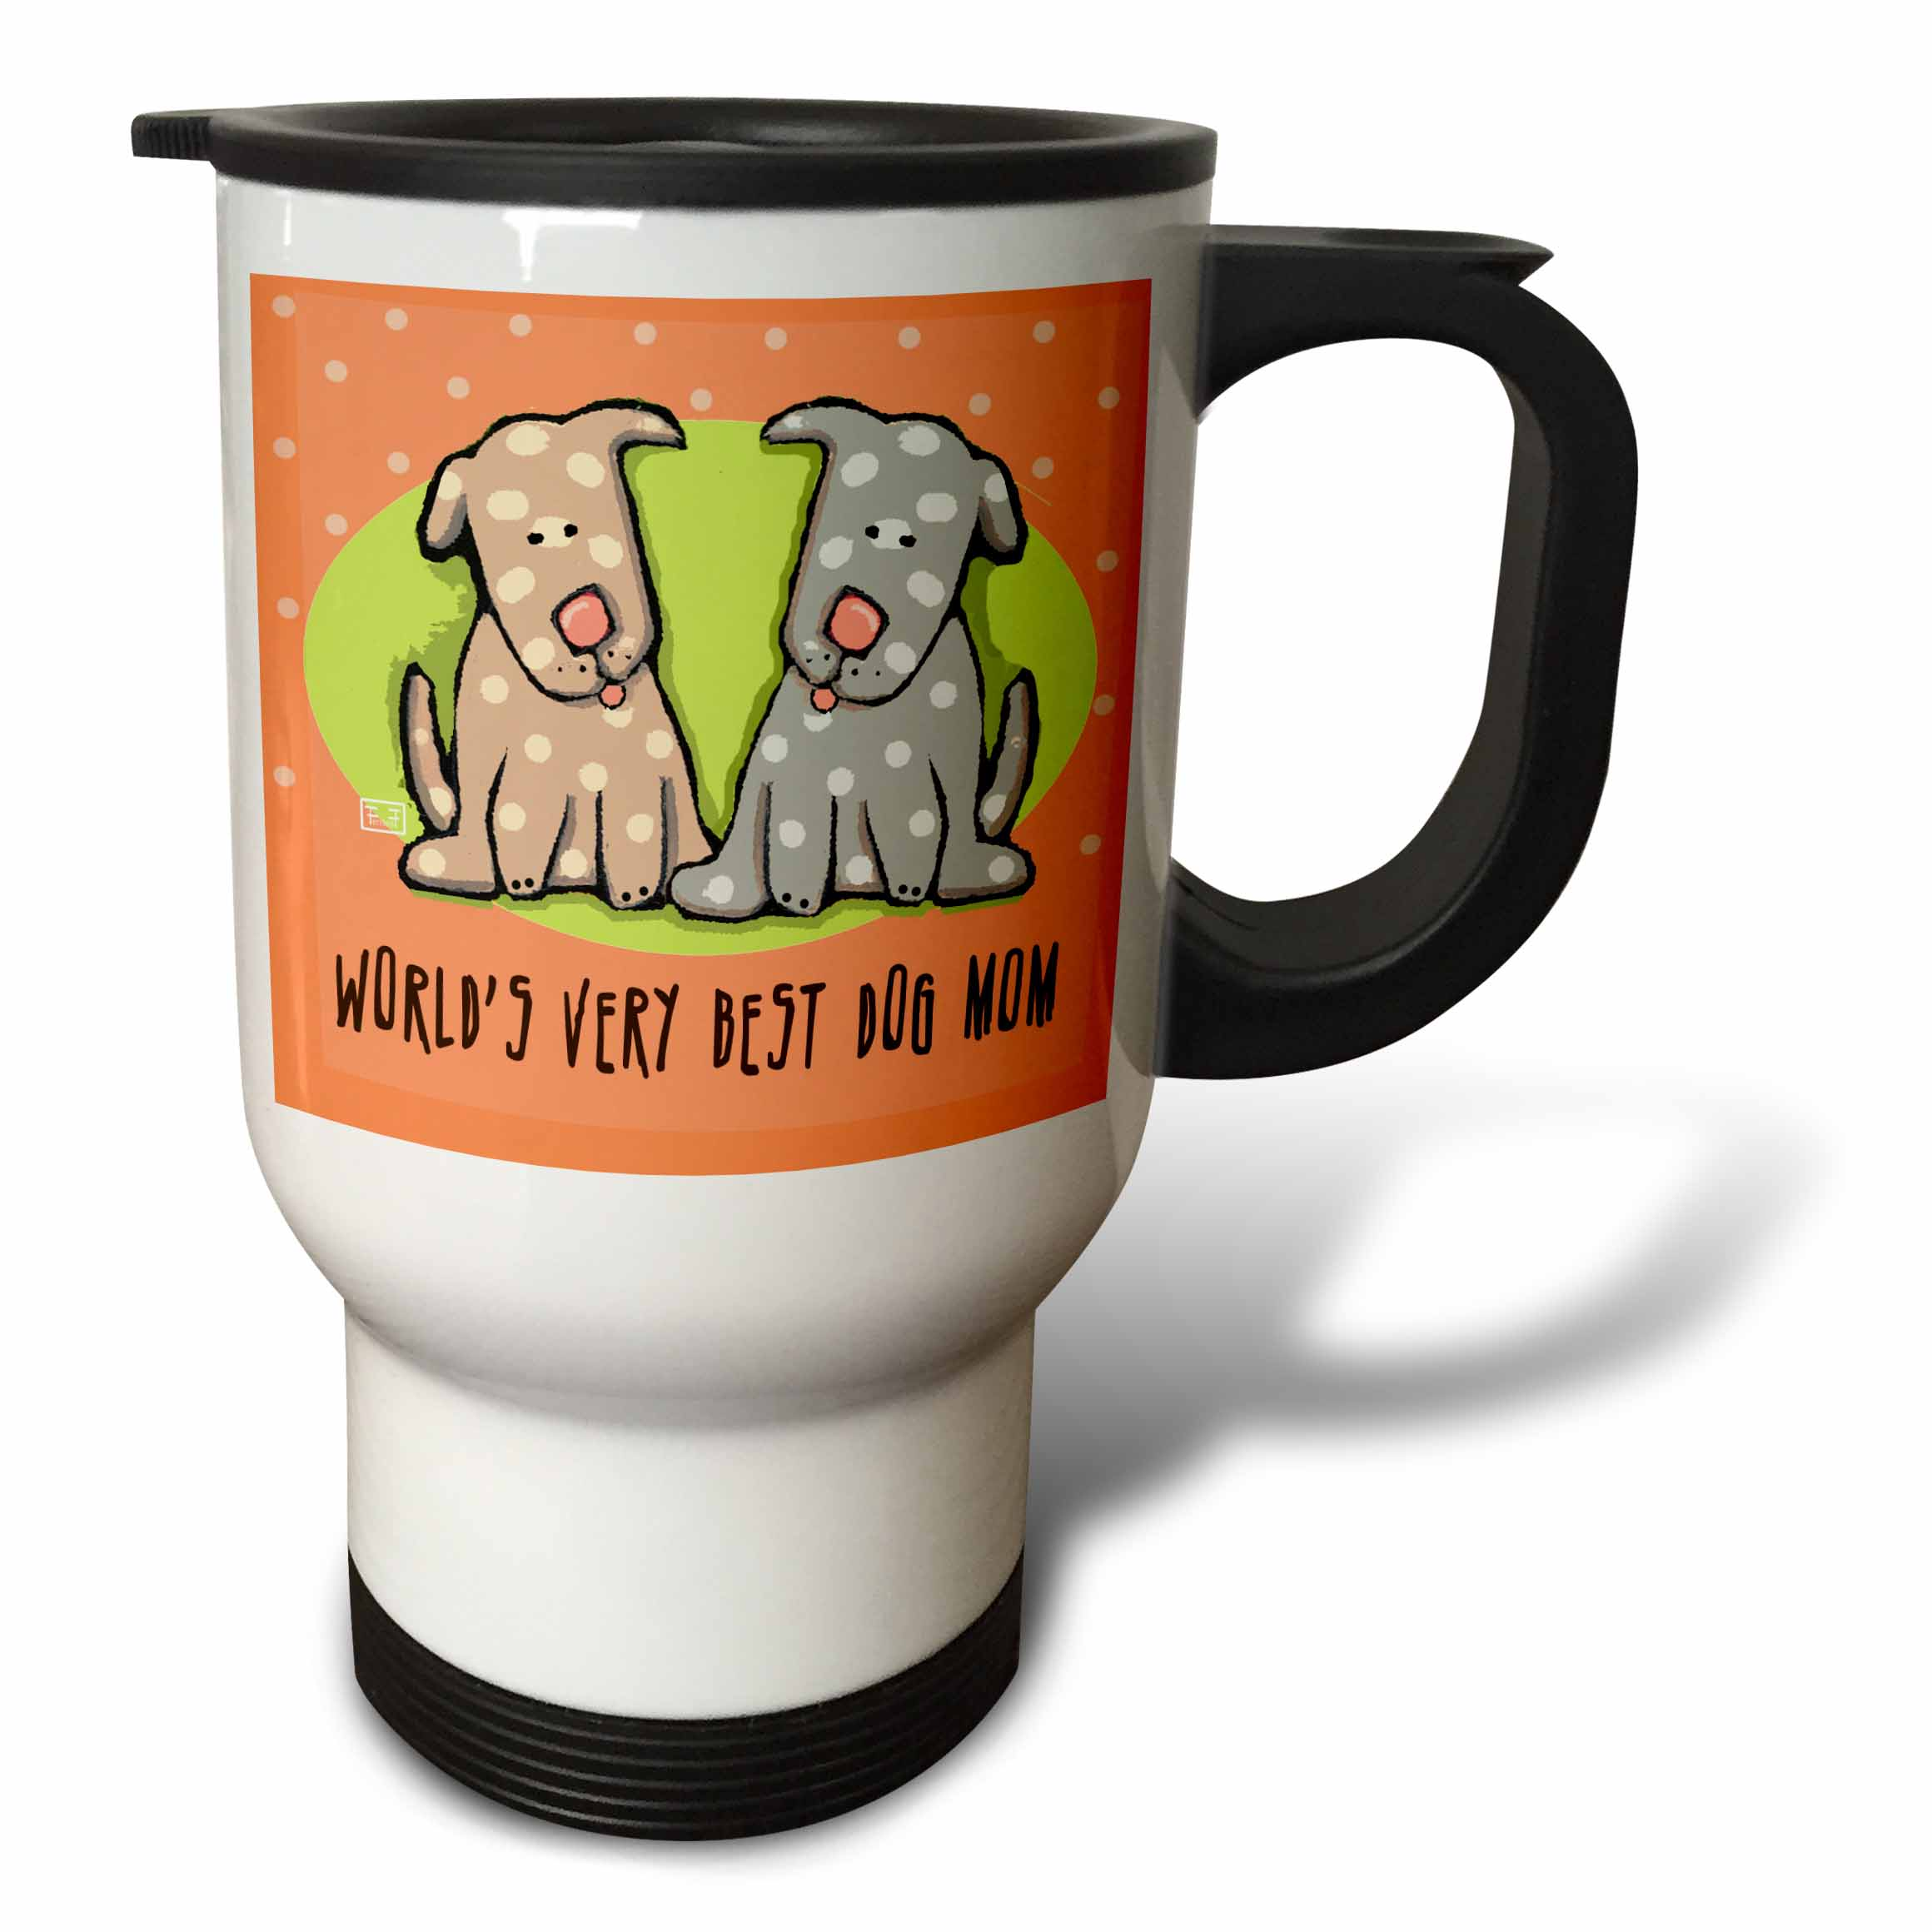 3dRose World s Best Dog Mom Cute Cartoon Puppies Pets Animals, Travel Mug, 14oz, Stainless Steel